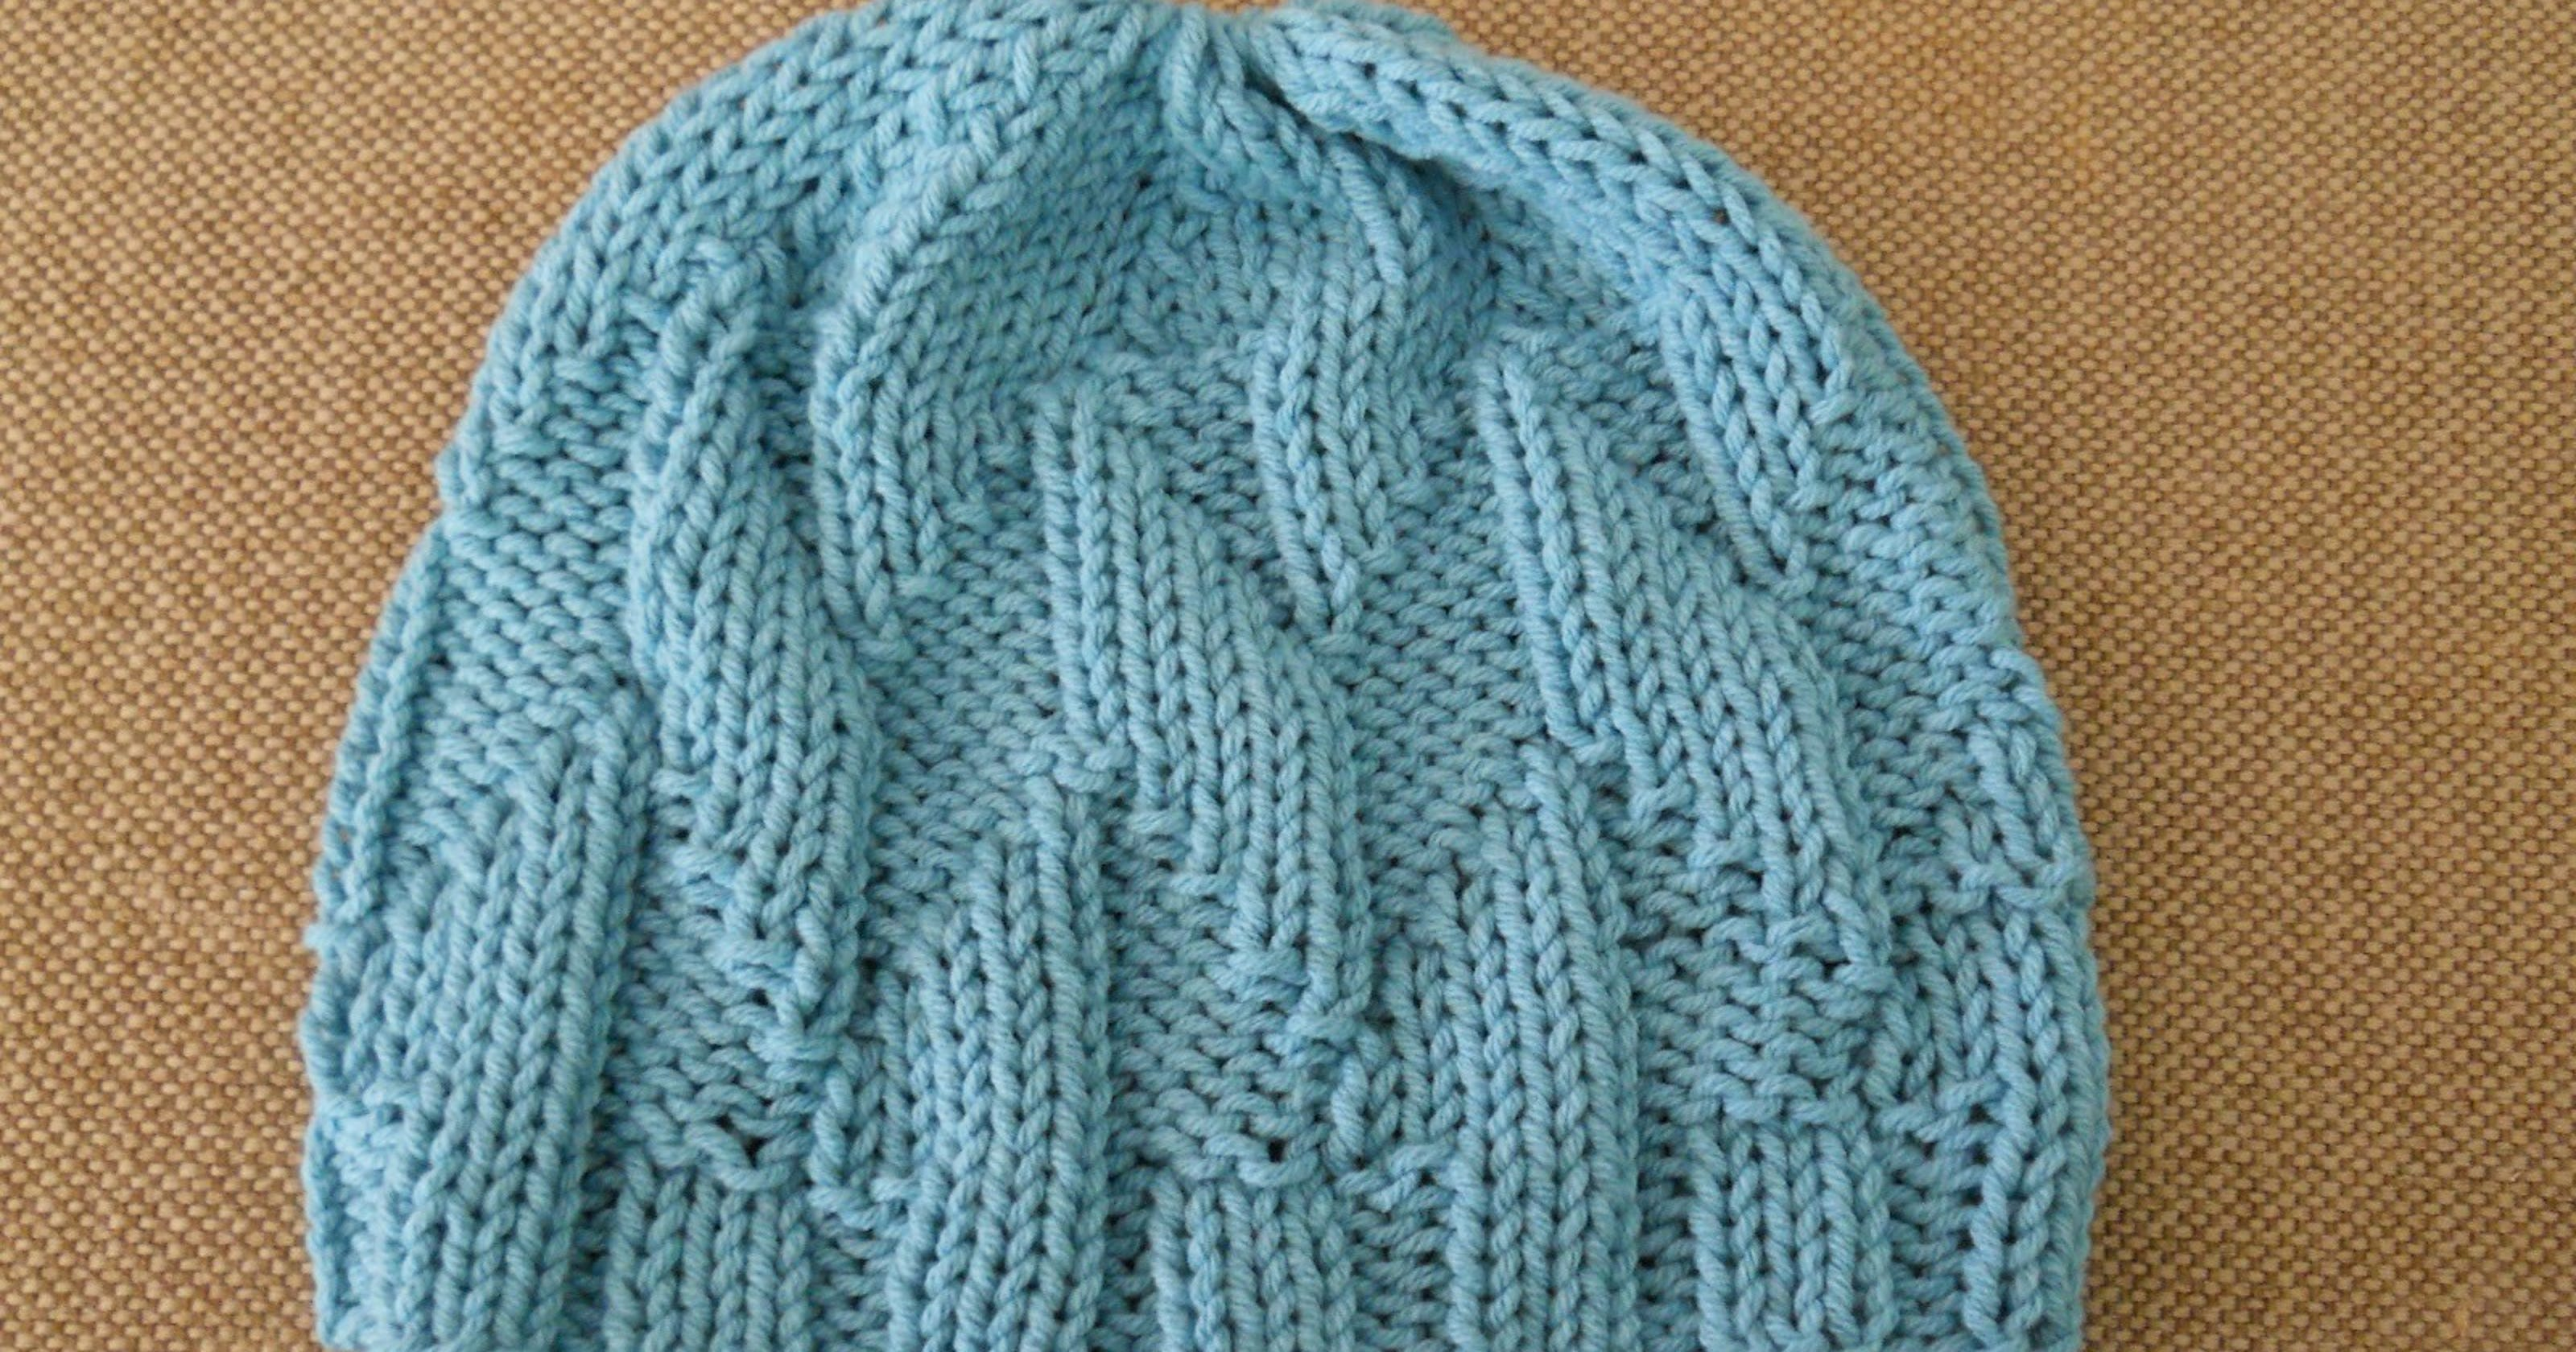 Knitted Chemo Hat Patterns Unique Design Ideas